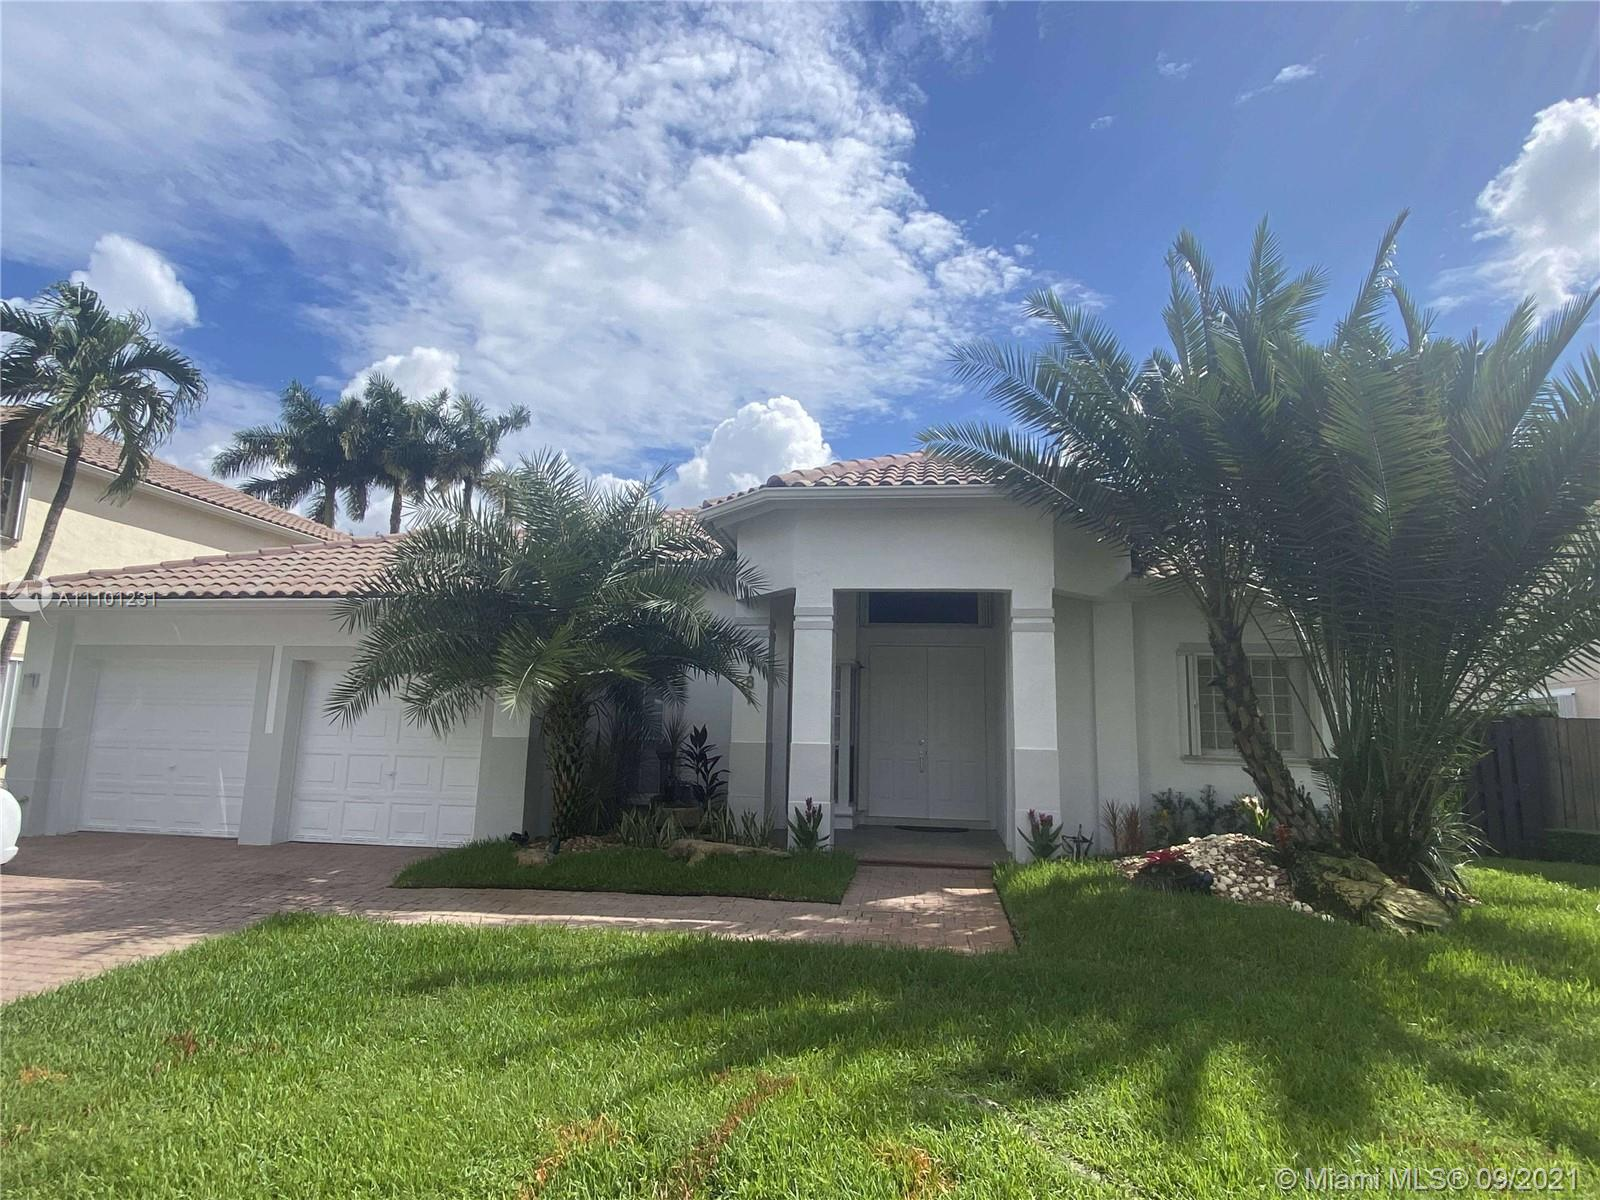 Single Family Home,For Rent,6781 NW 112th Ave #6781, Doral, Florida 33178,Brickell,realty,broker,condos near me